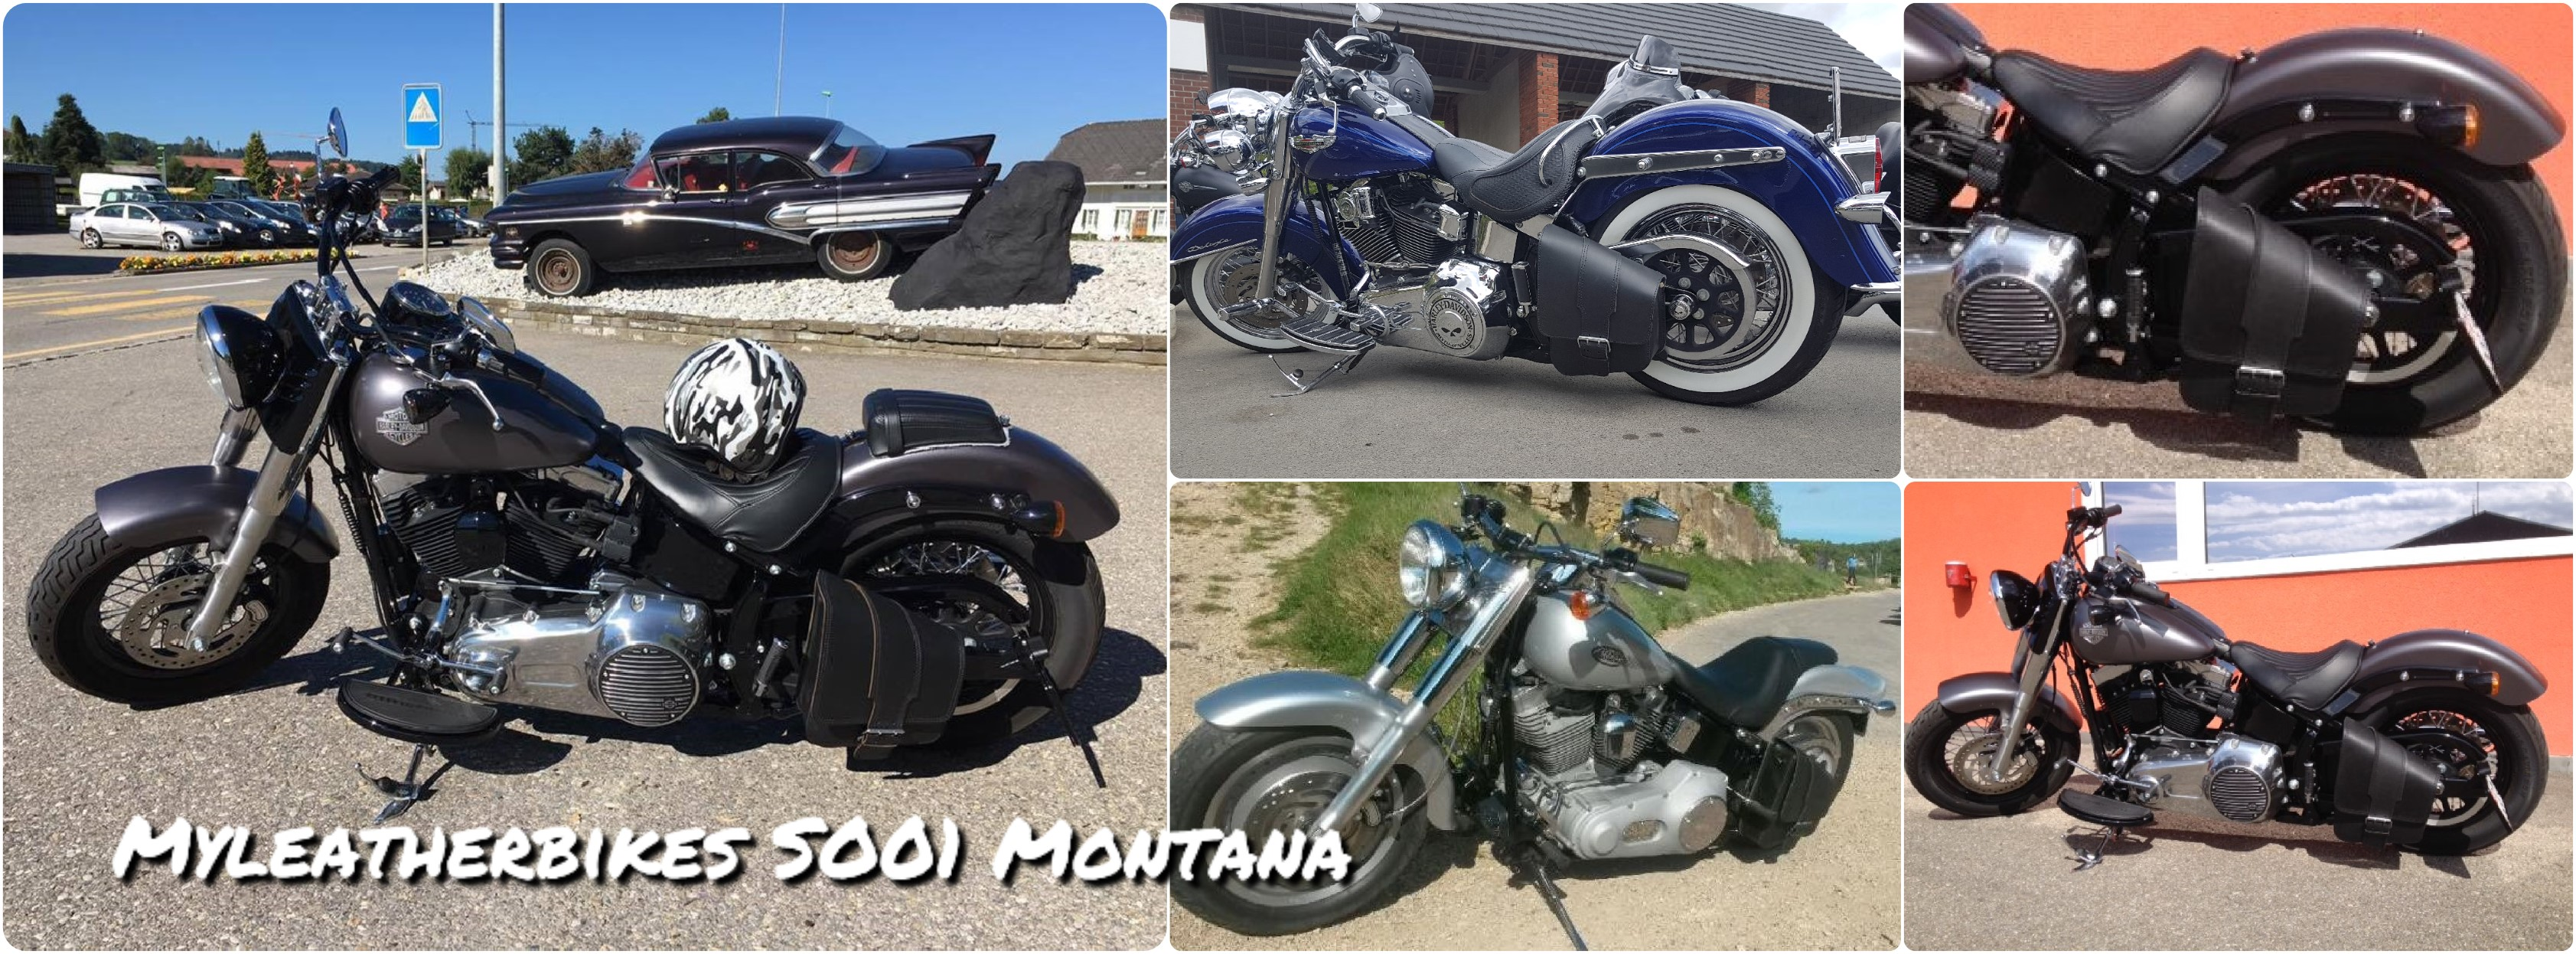 sacoche softail so01 montana